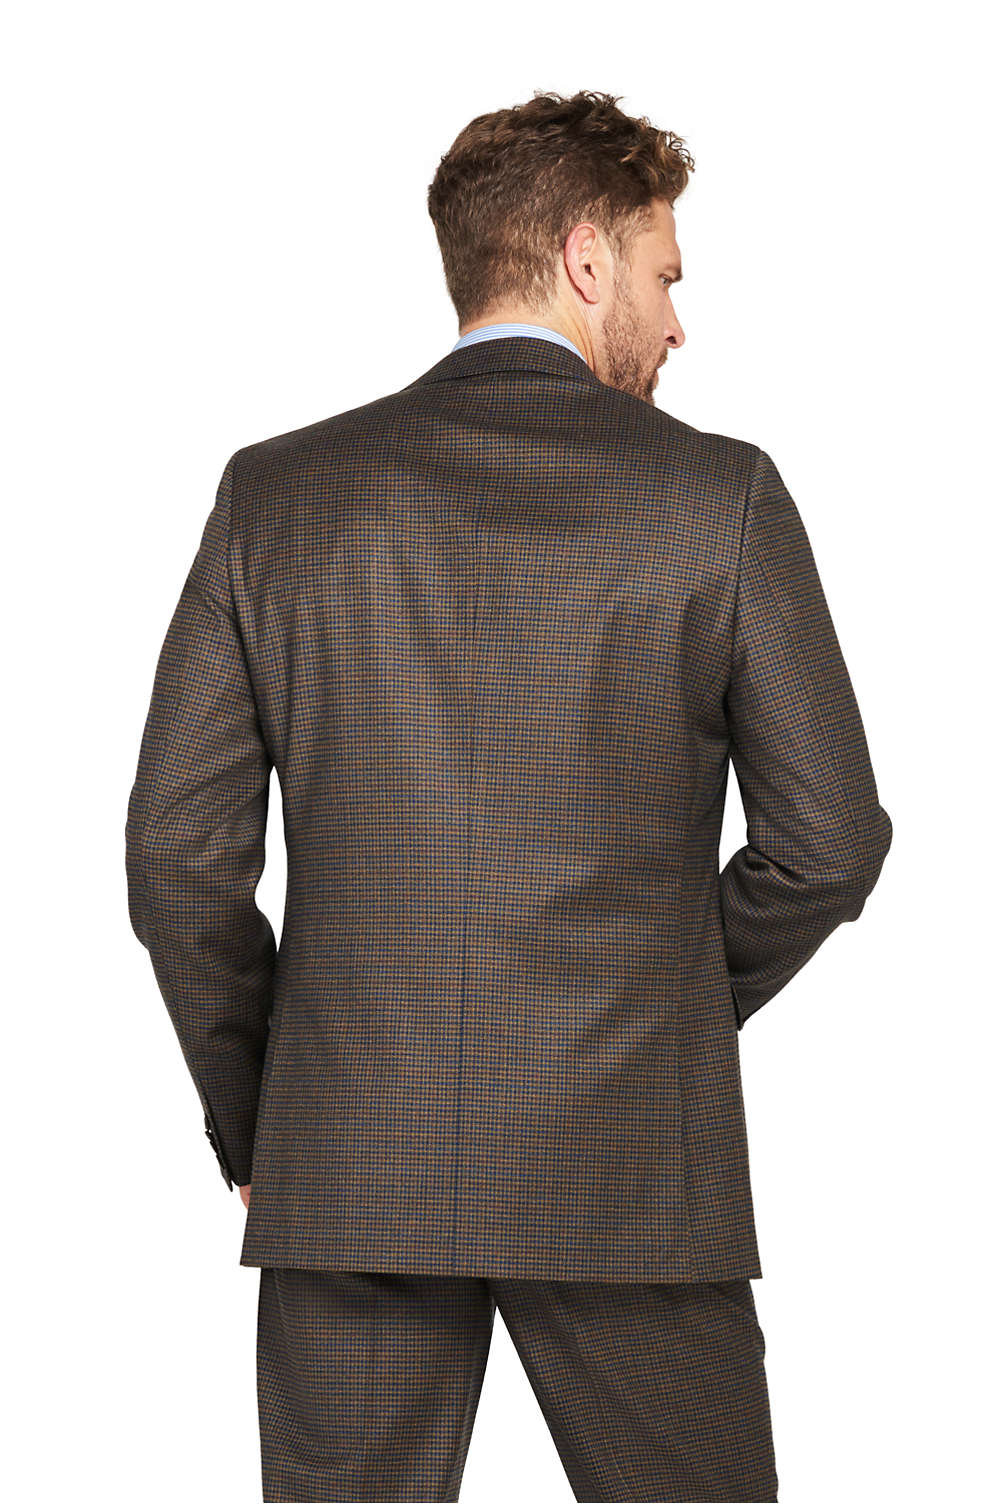 6dee557544d Men s Pattern Traditional Fit Comfort-First Year rounder Suit Jacket ...